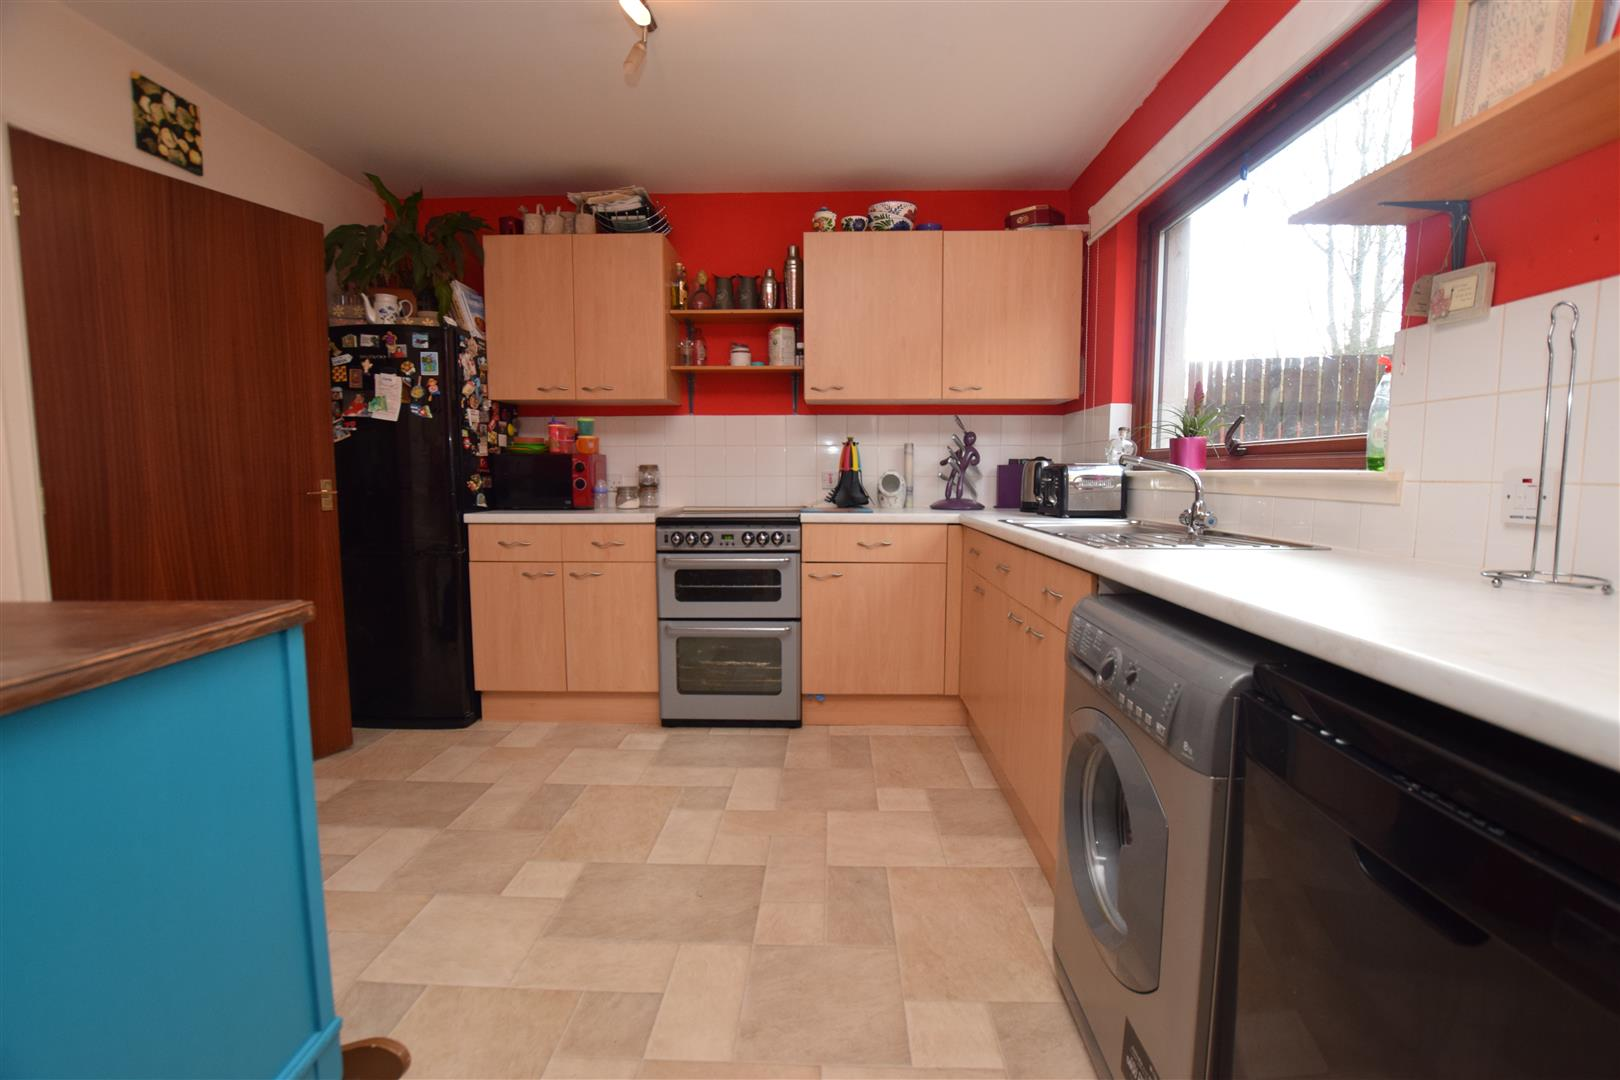 22, Forest Way, Blairgowrie, Perthshire, PH10 6SS, UK